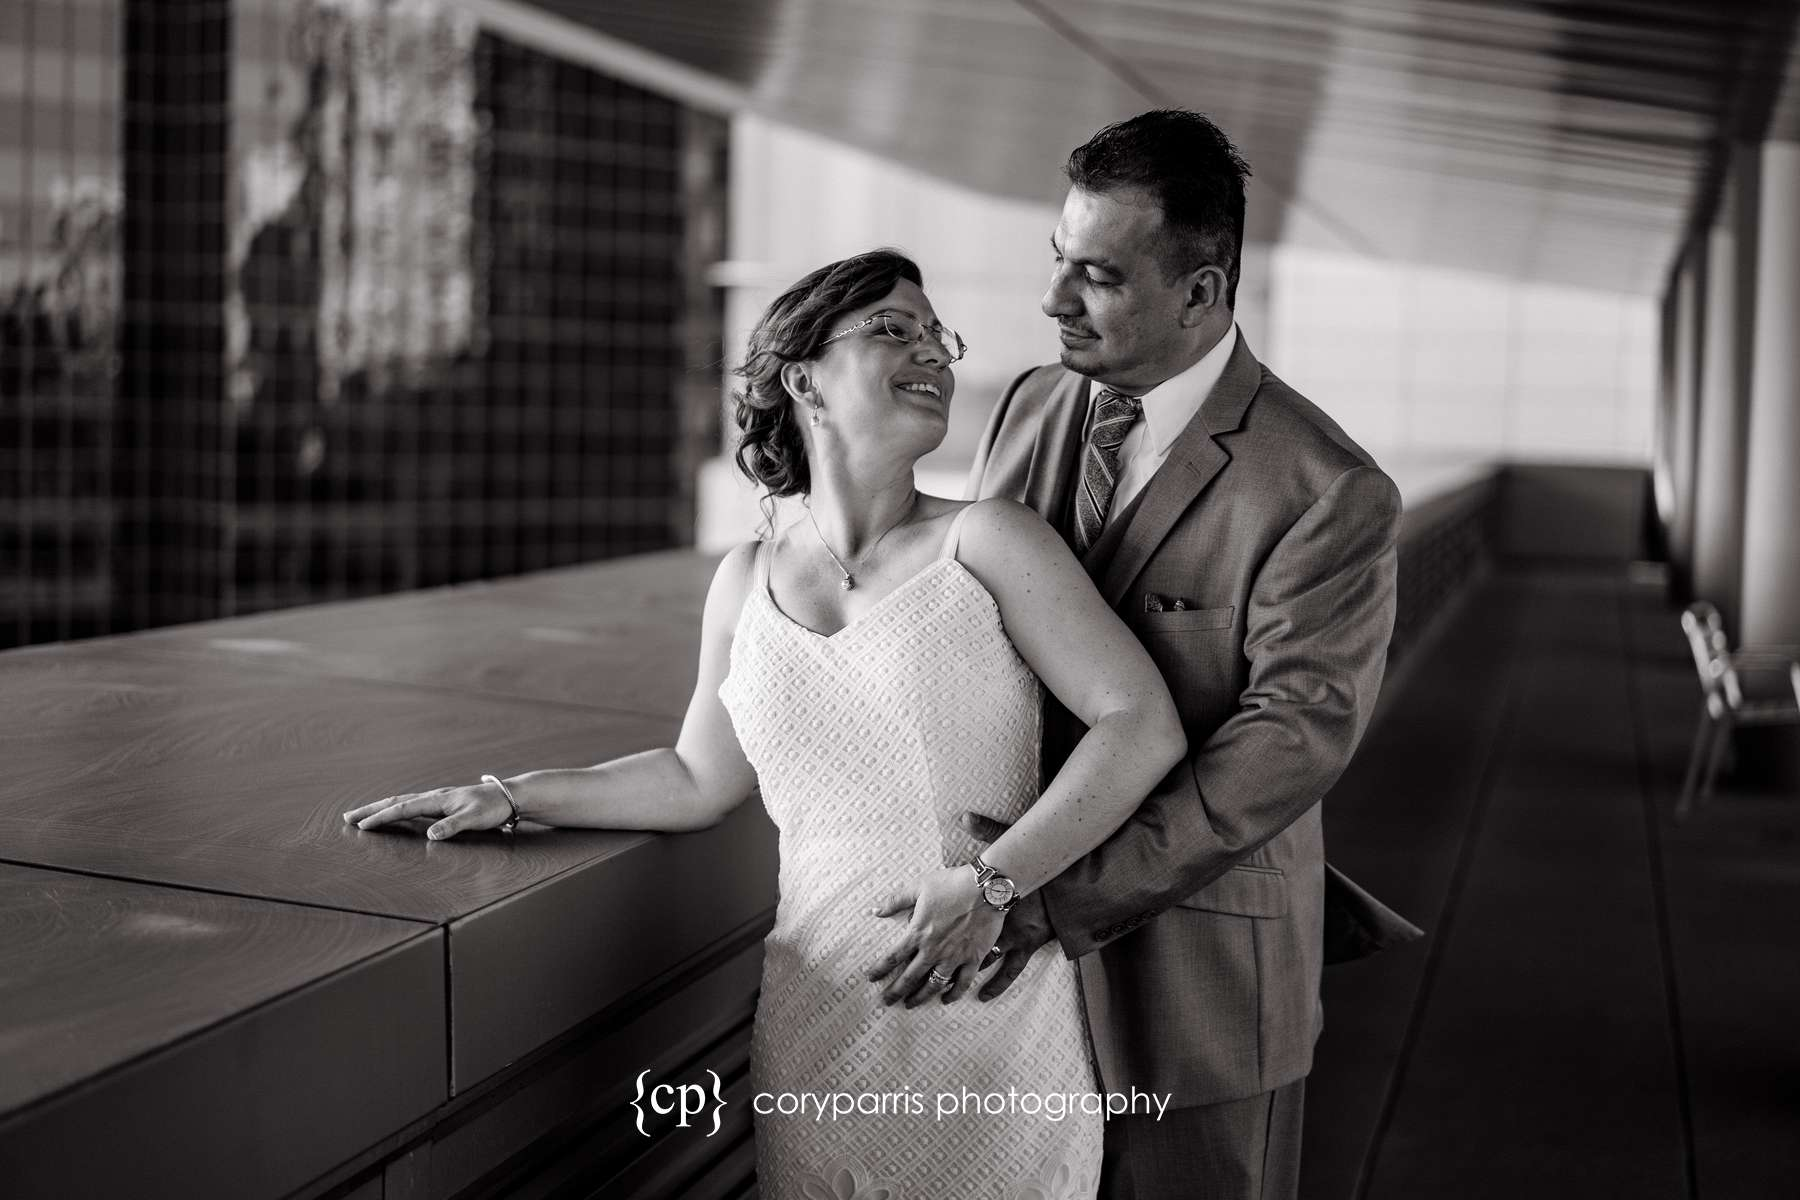 075-seattle-courthouse-wedding.jpg